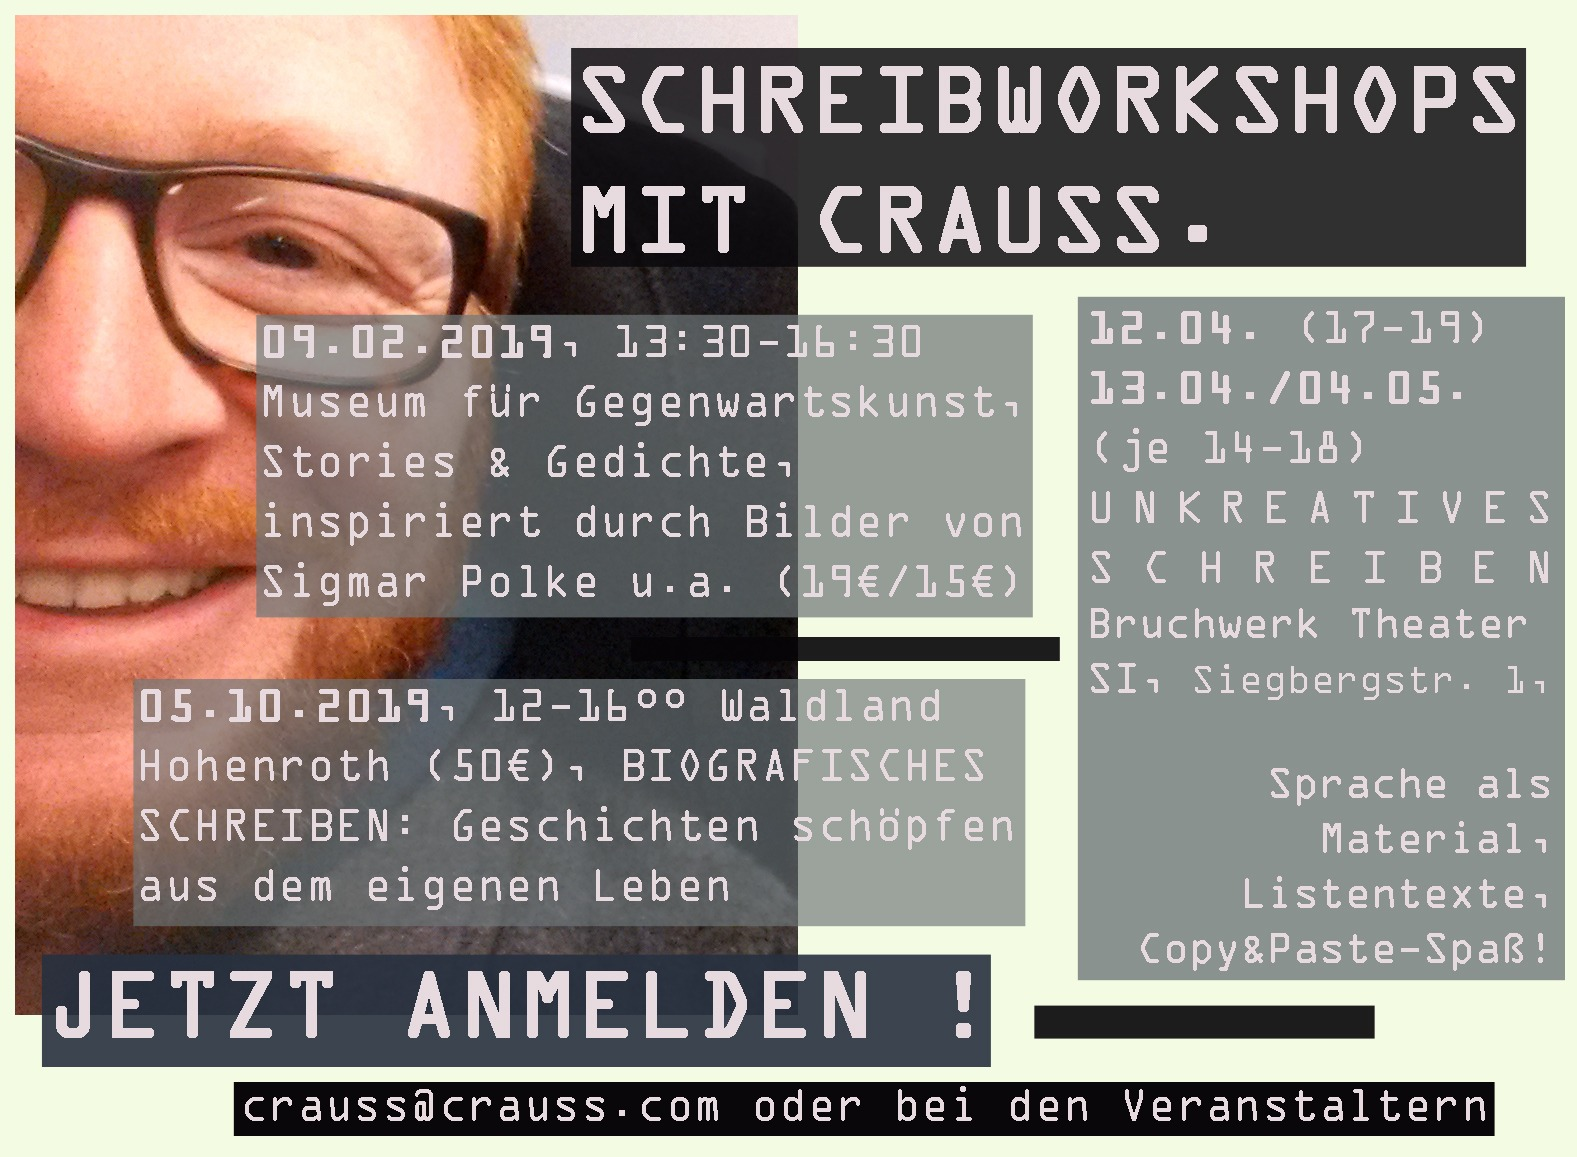 Workshops mit Crauss 2019